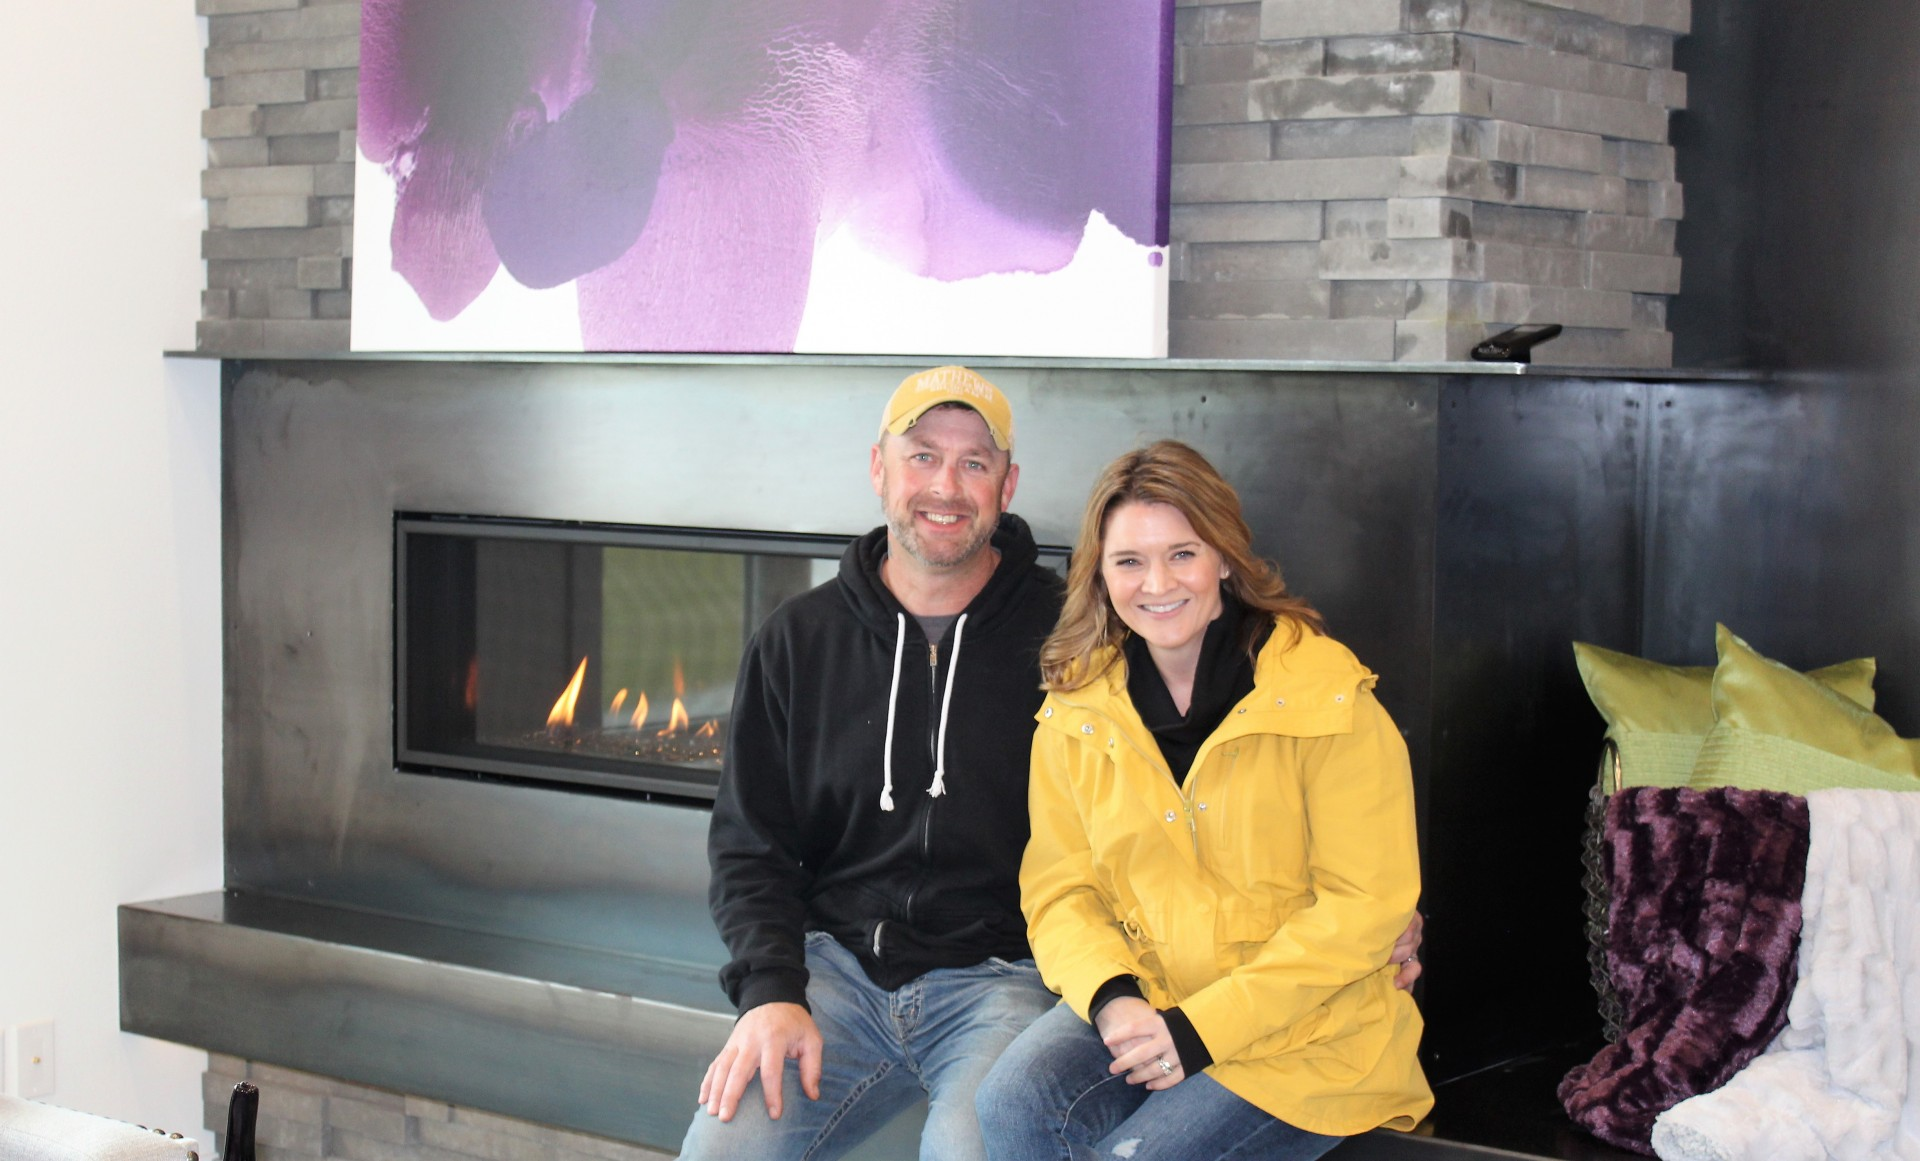 Chris Buttke and his wife Janel in front of dry stacked fireplace